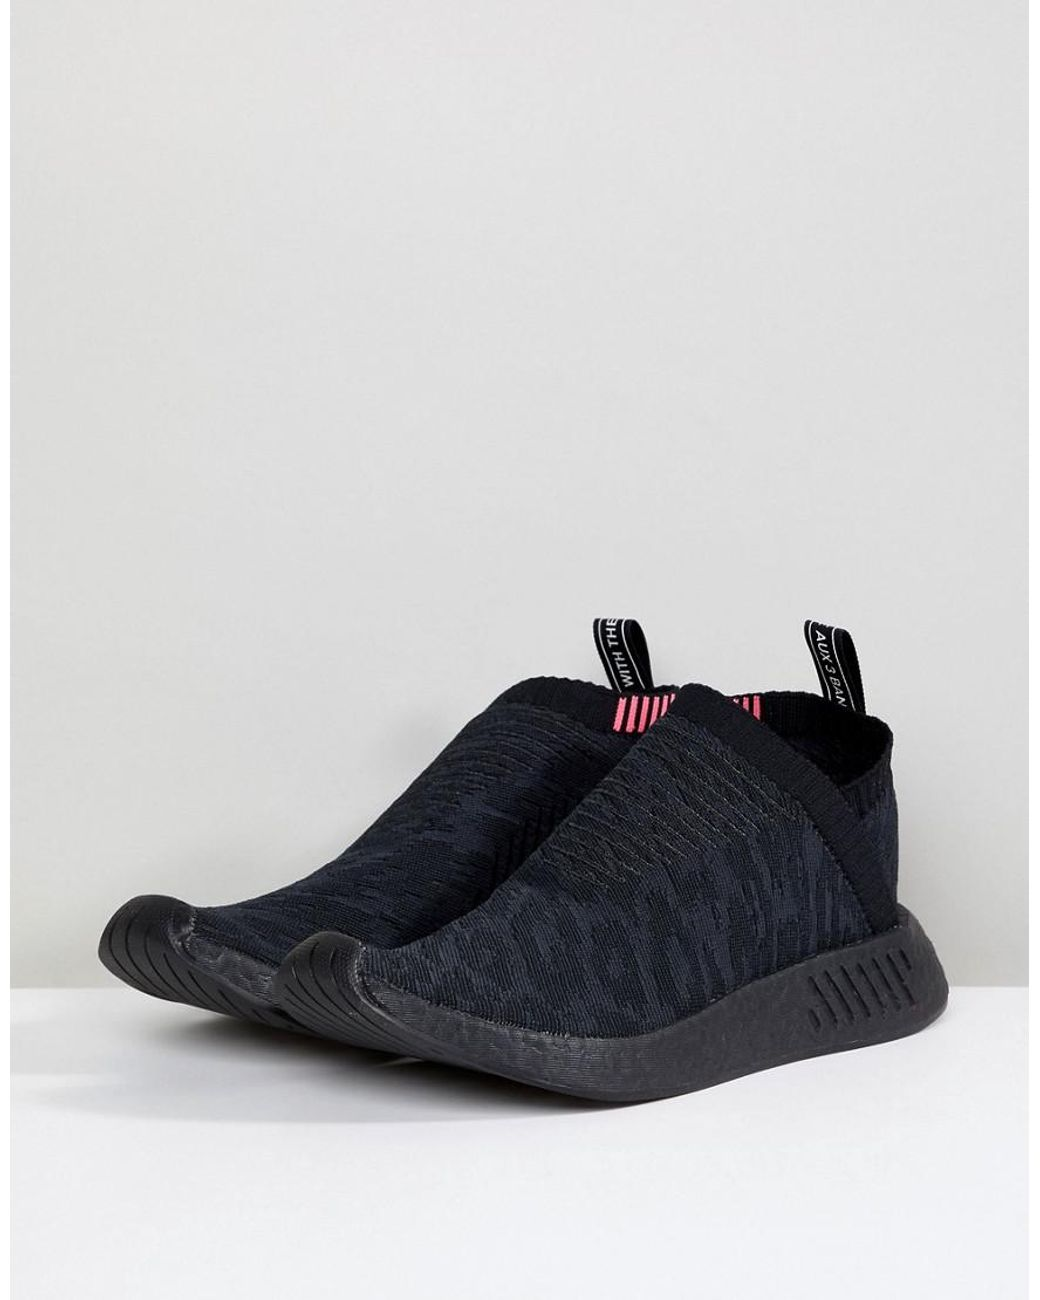 sold worldwide good service huge inventory Nmd Cs2 Primeknit Boost Trainers In Black Cq2373